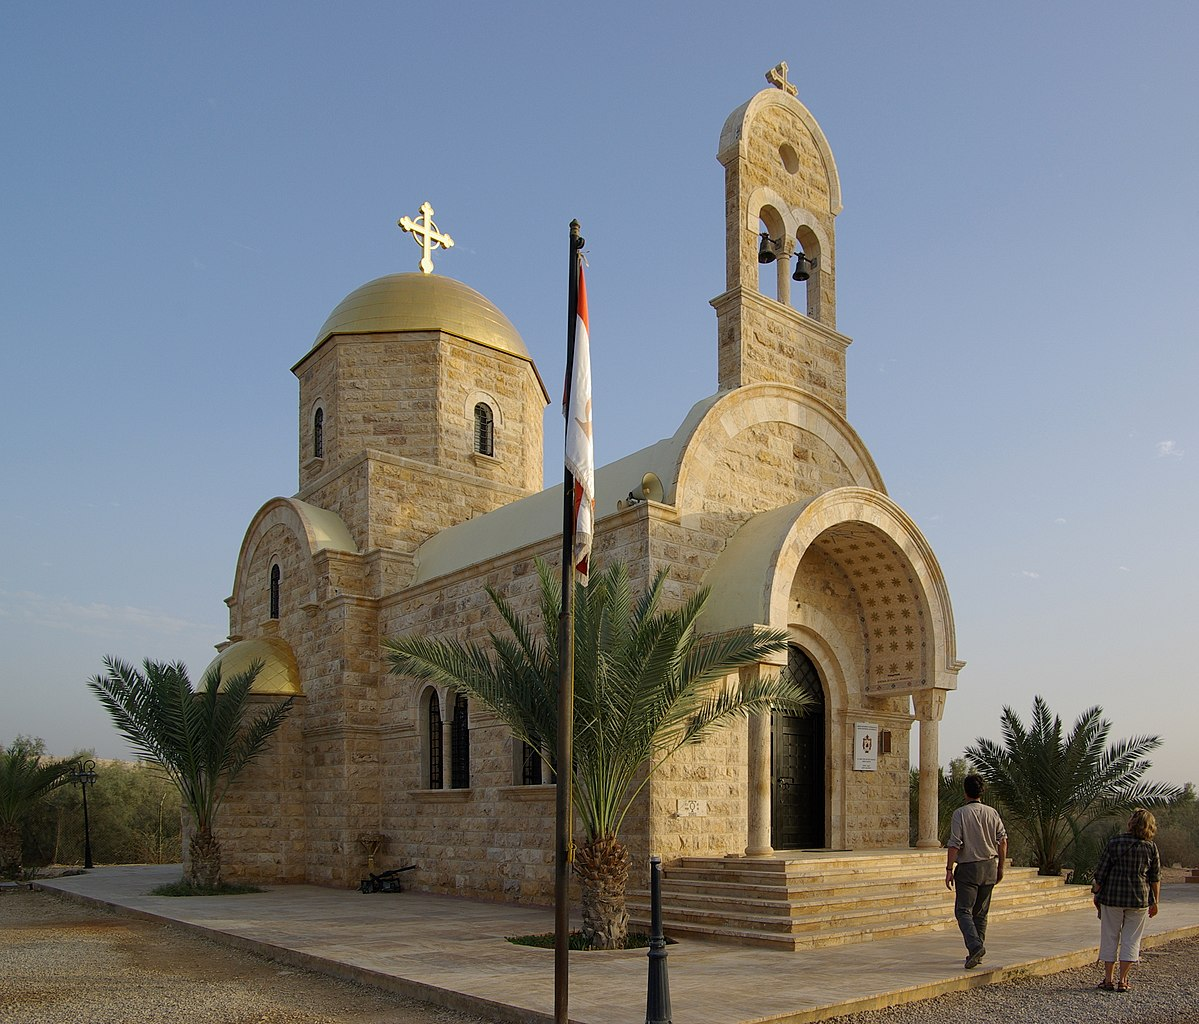 mount nebo singles dating site Arrive in haifa, a city with a long history dating back to biblical times breakfast  dead sea excursion to madaba, mount nebo & bethany beyond the jordan.